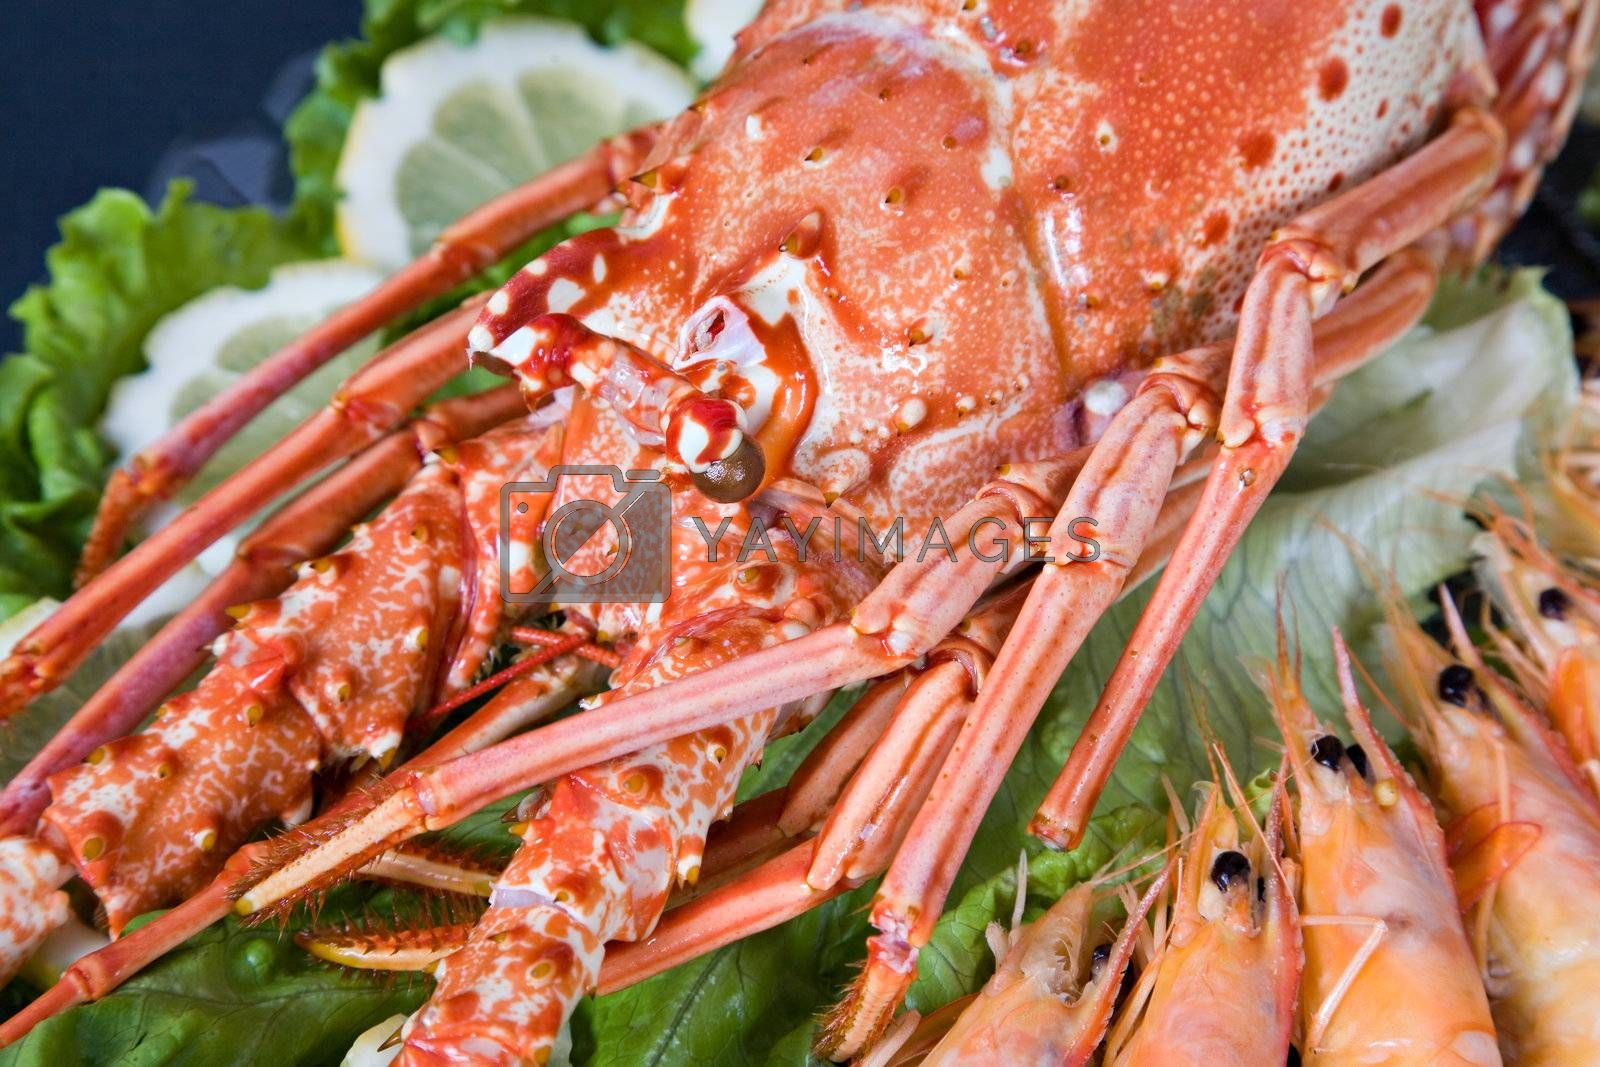 lobster and shrimp by PauloResende